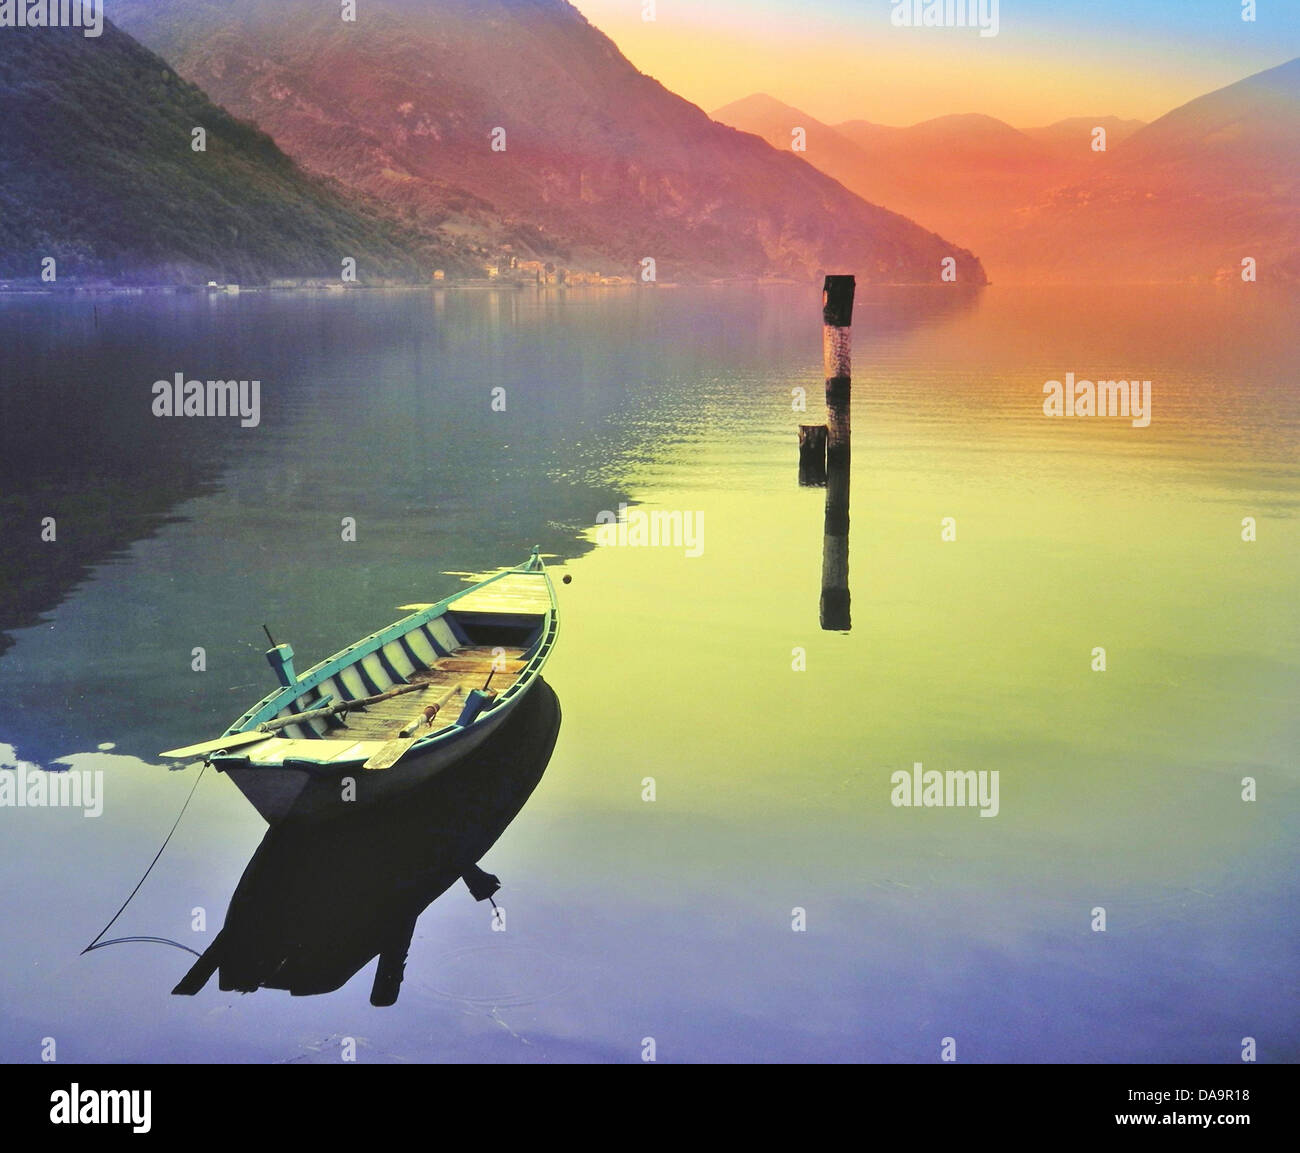 Italy, Iseo, lake, oar boat, small boat, mountains, reflection, light, alienated - Stock Image